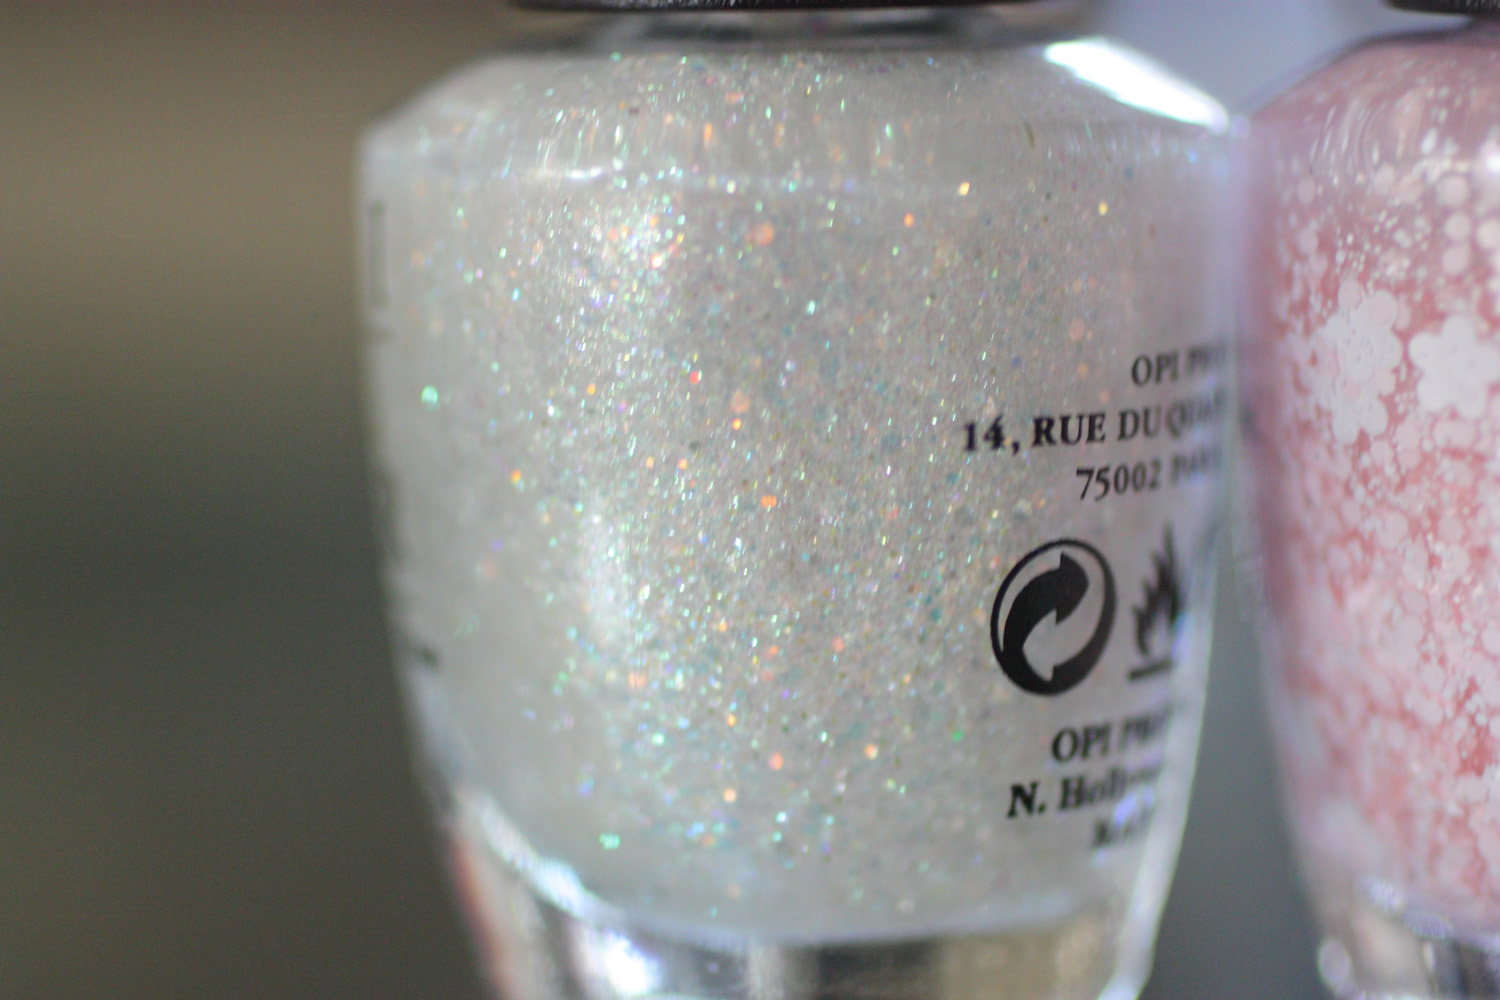 OPI Make Light of the Situation from the 2015 Soft Shades collection